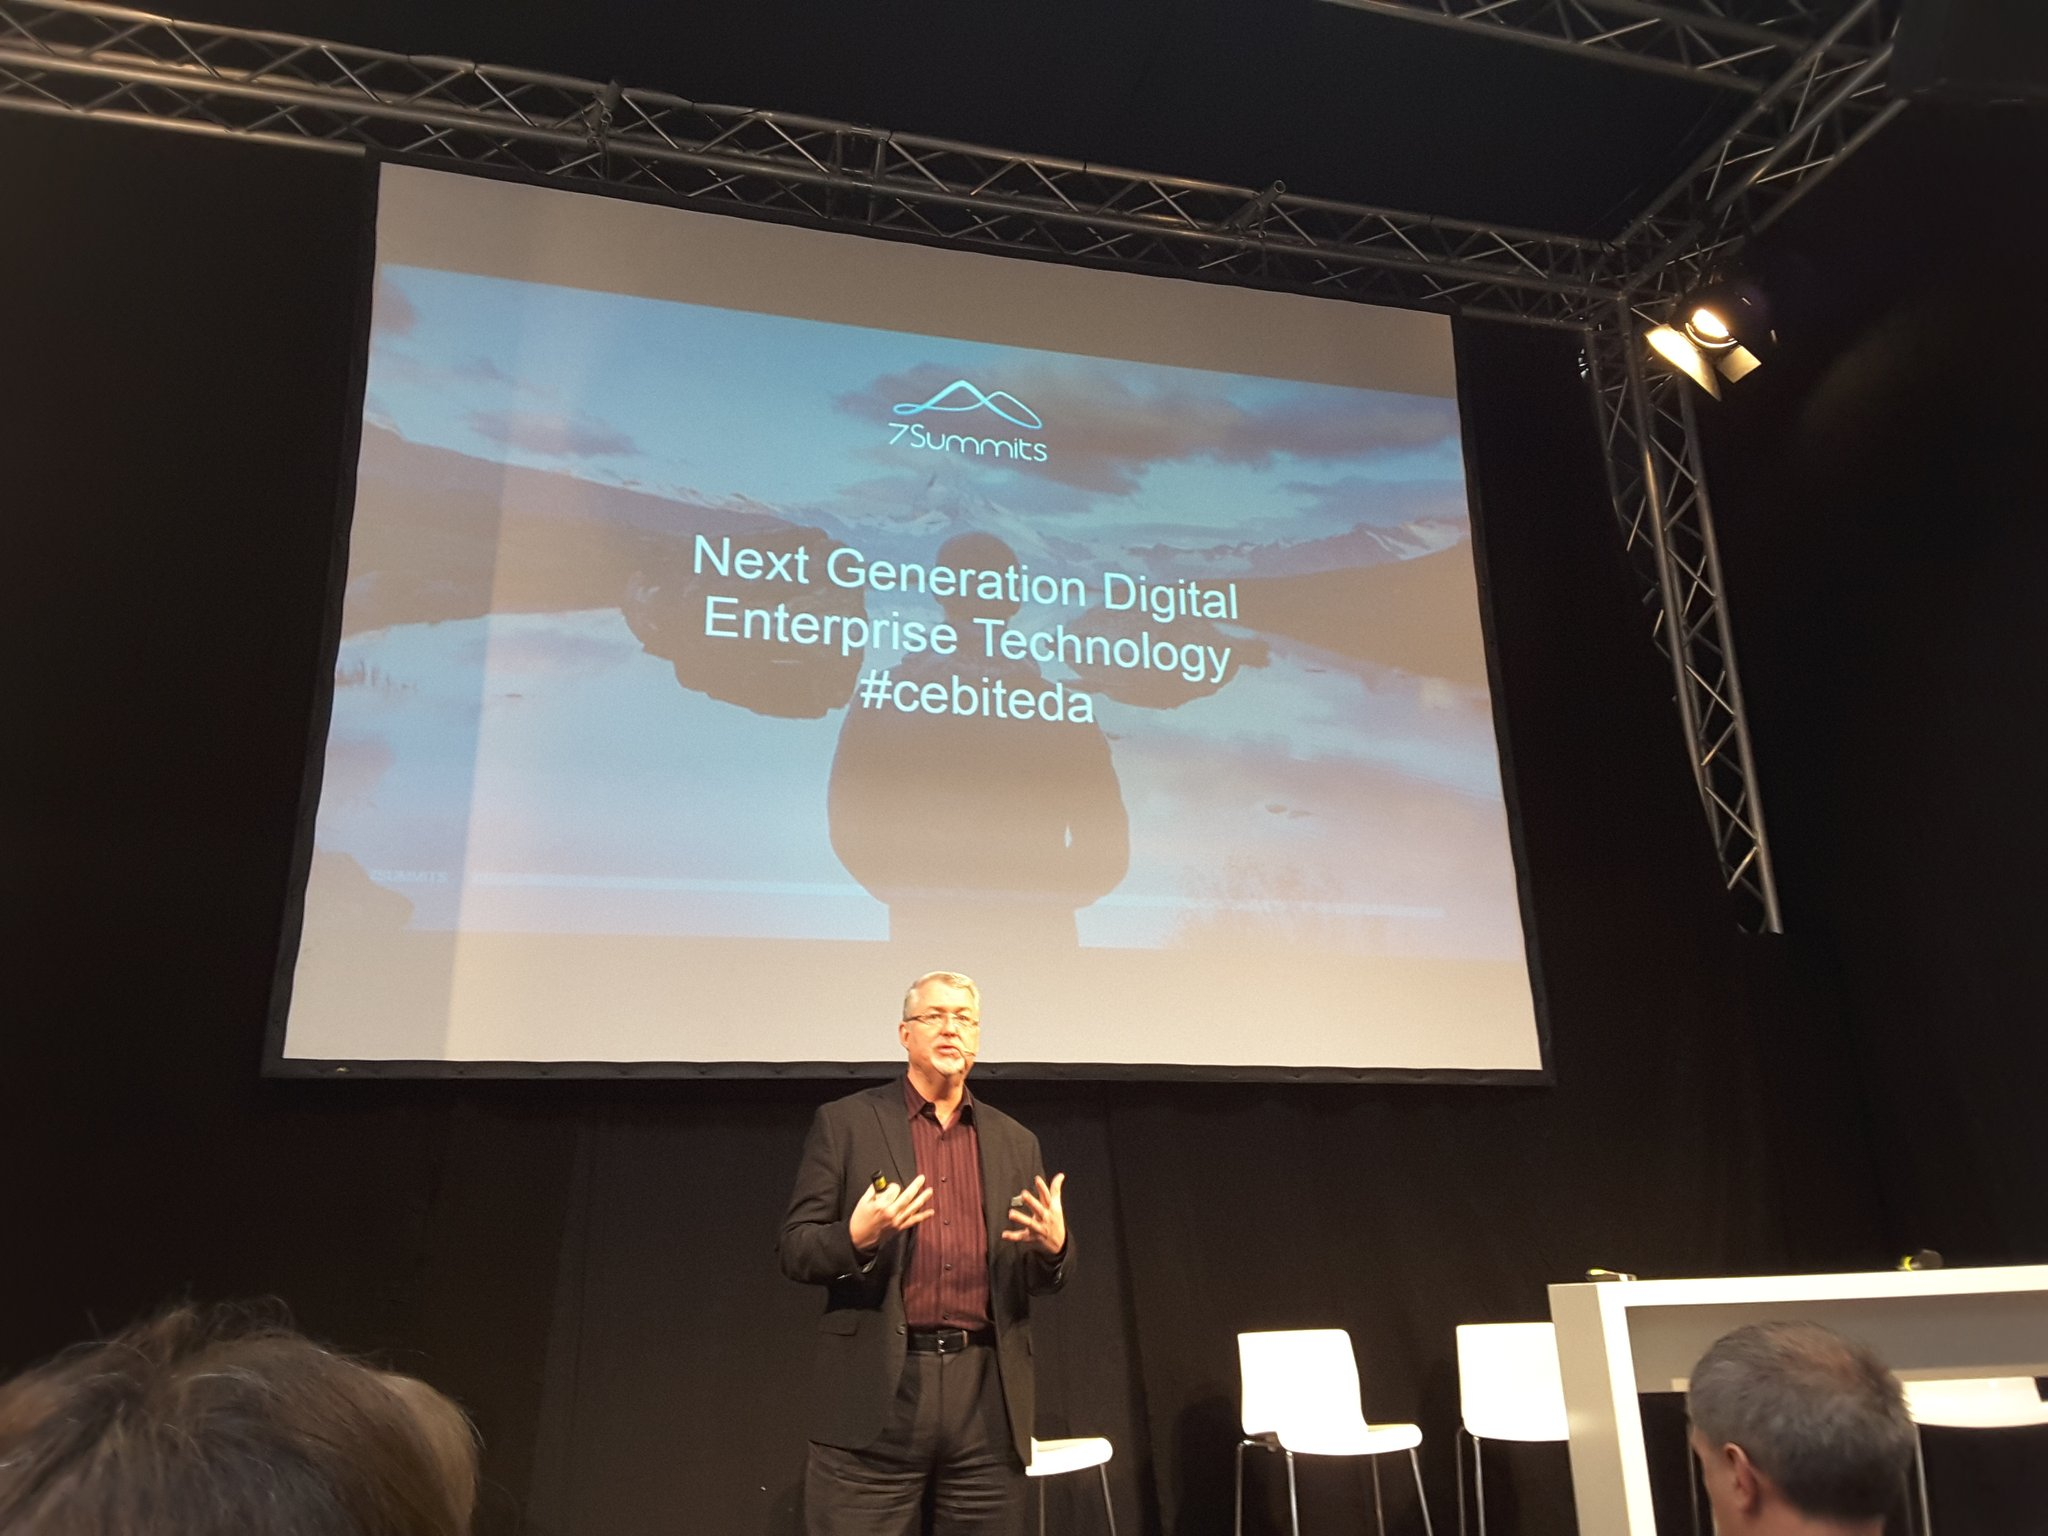 Defintely a highlight of this years #cebiteda - to hear  @dhinchcliffe talking about the next gen digital enterprise technlogy https://t.co/XgkAgiC1YA